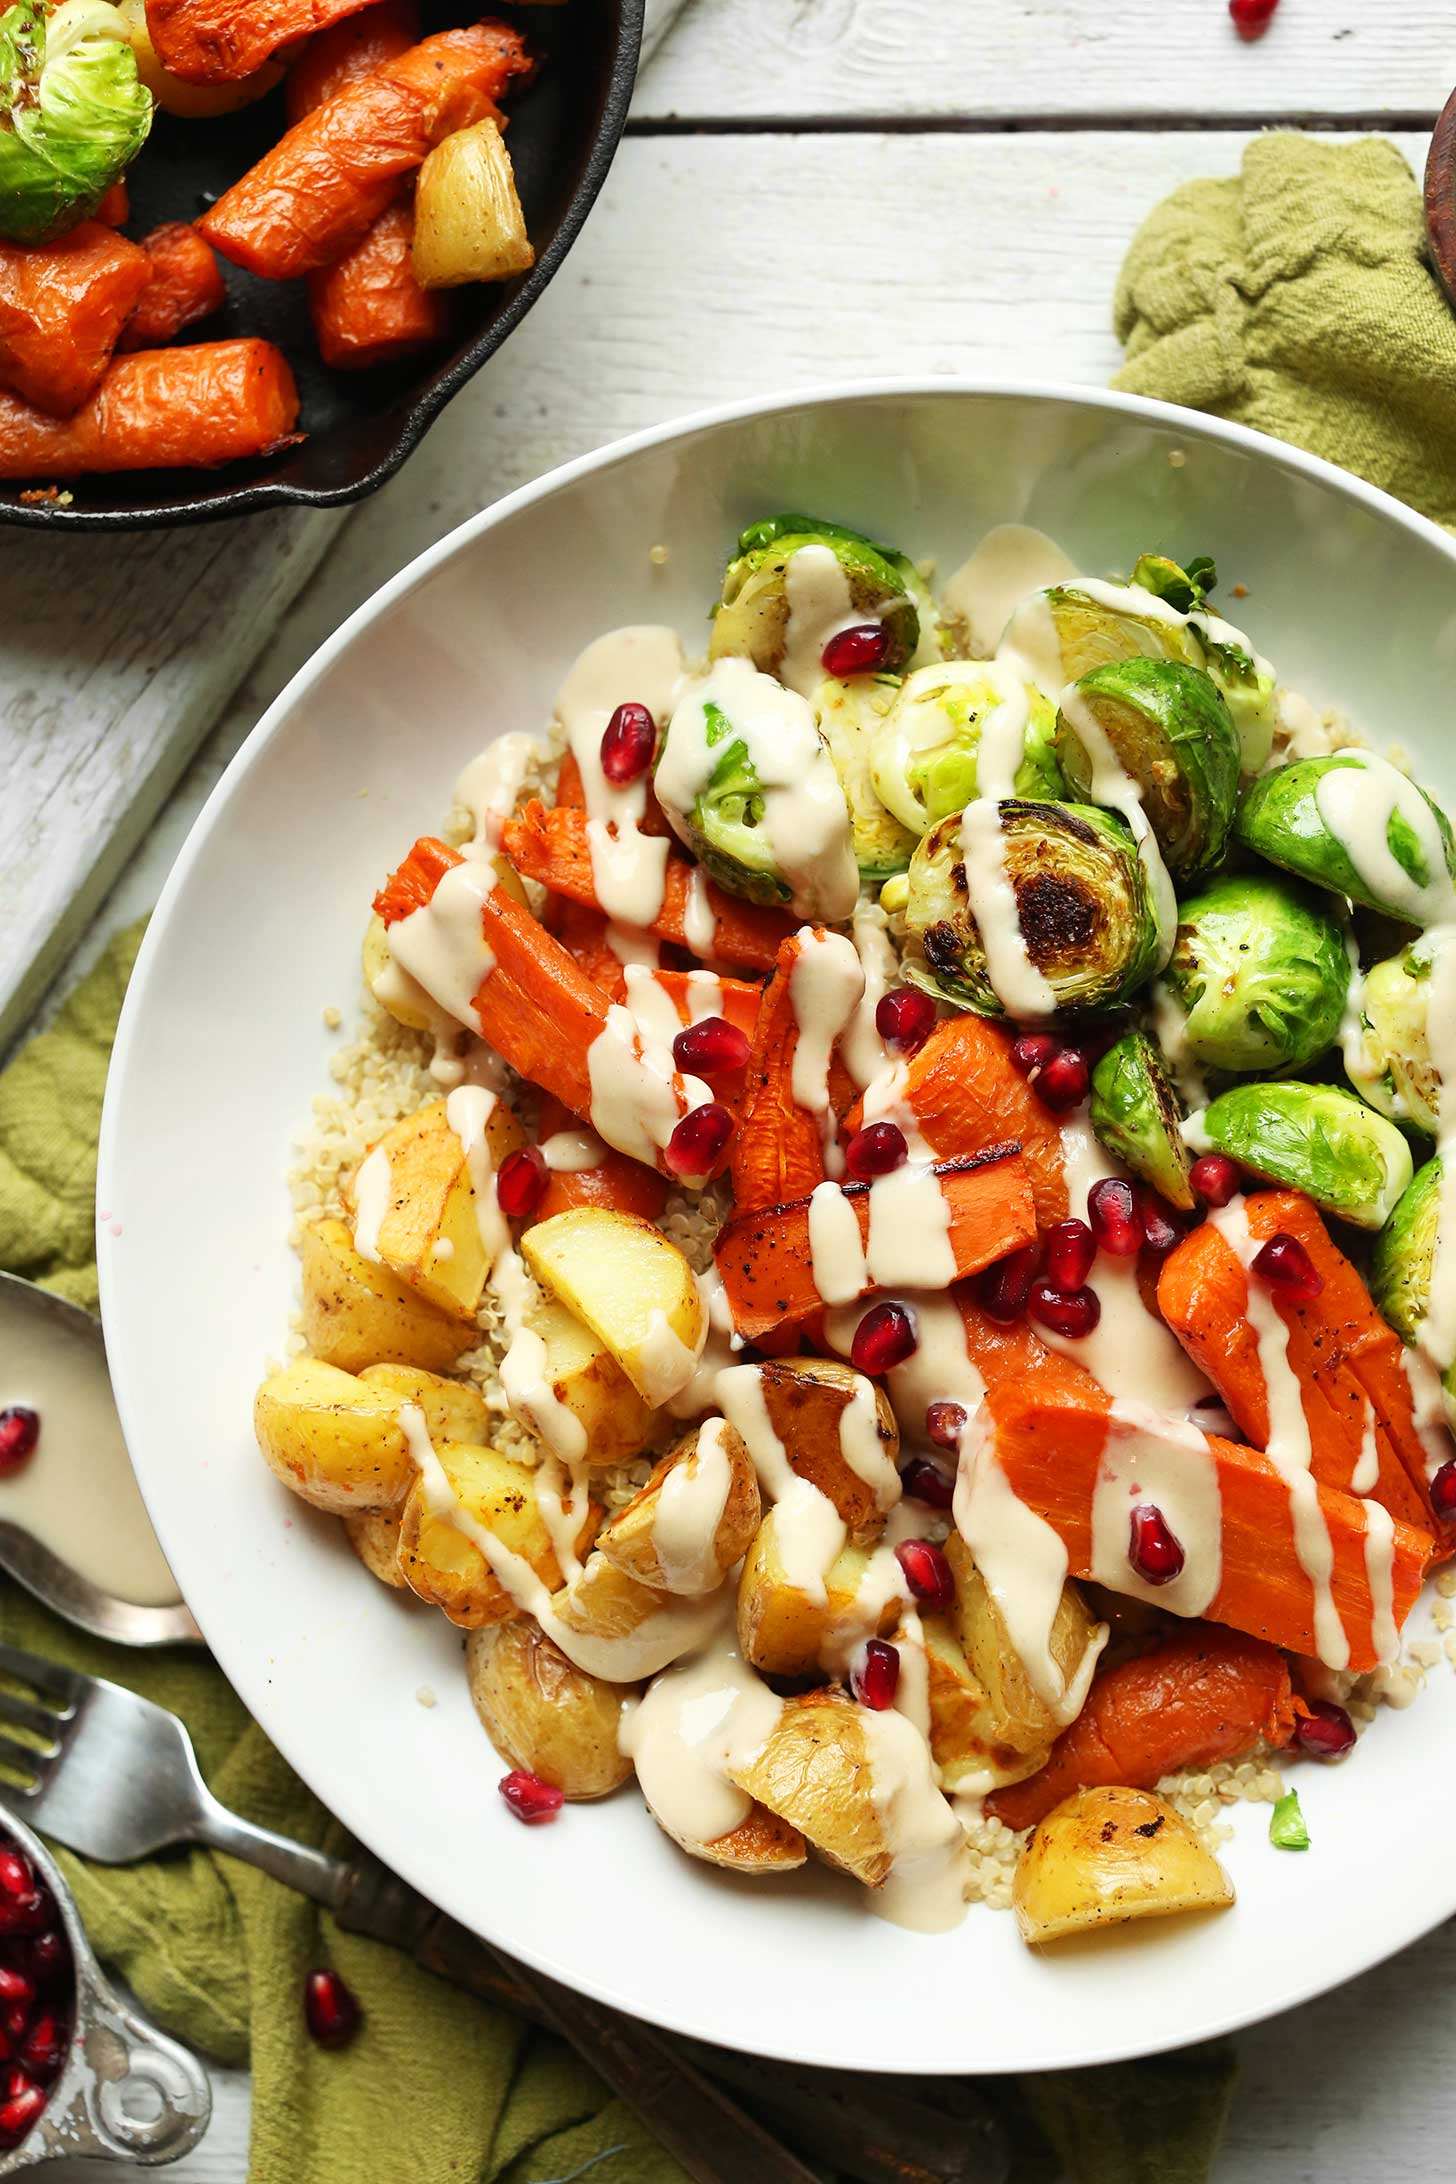 Amazing 30 Minute Roasted Vegetable And Quinoa Harvest Bowls Hearty Wholesome